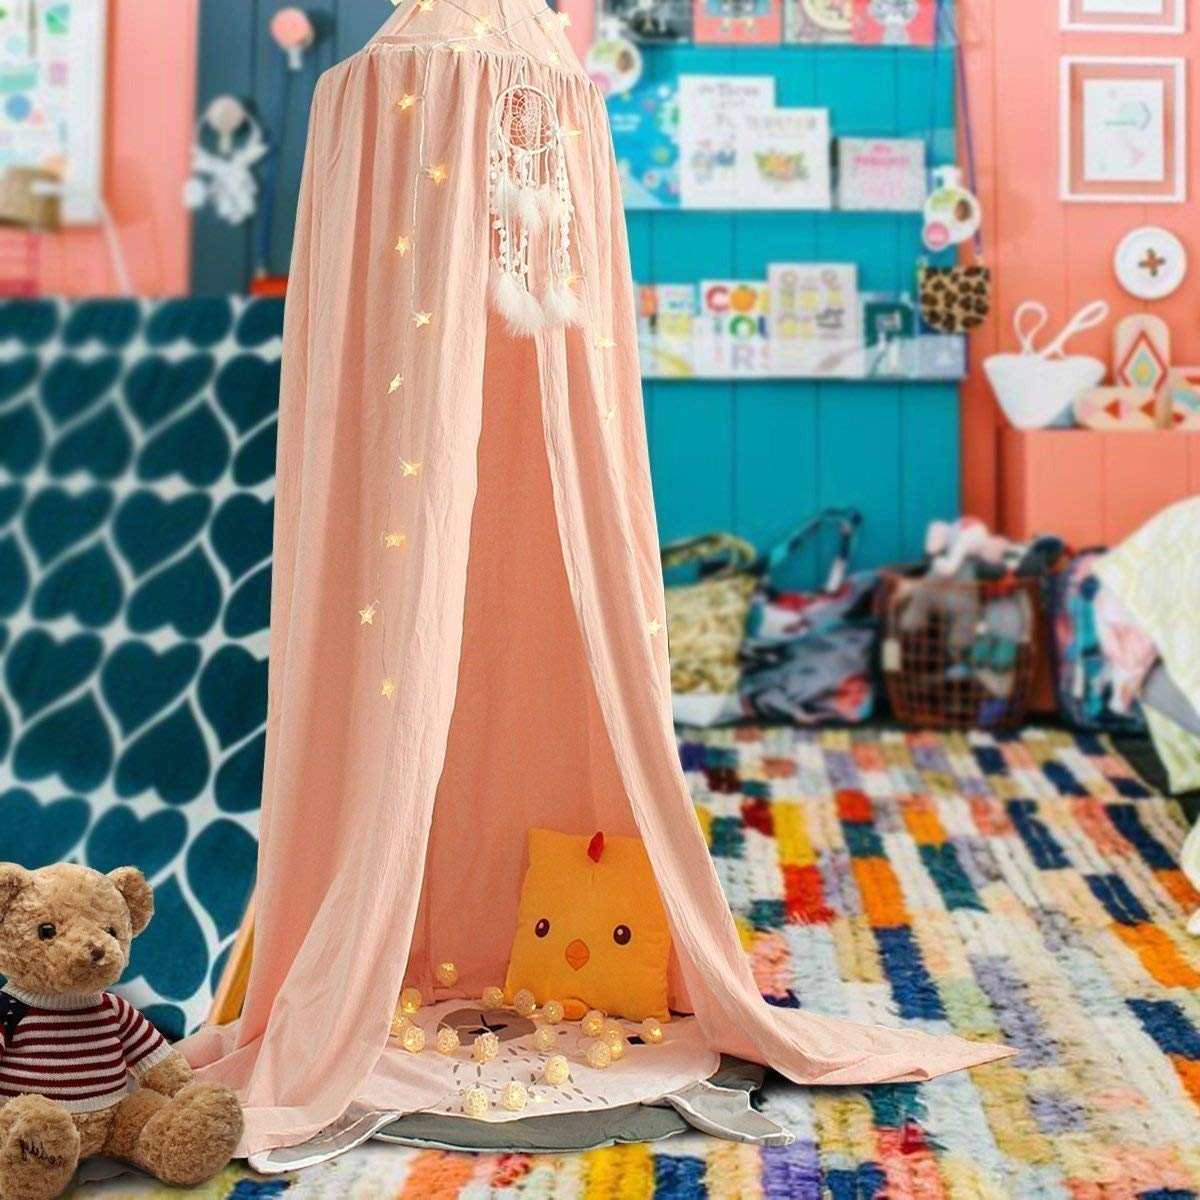 Samyoung Kids Bed Canopy Mosquito Net Witch Hat Style Round Dome Bed Canopy Screen Mantle Bed Curtain Tent Cotton Cloth Hanging Mosquito Net for Cotton Canvas Pink With Dreamcatcher